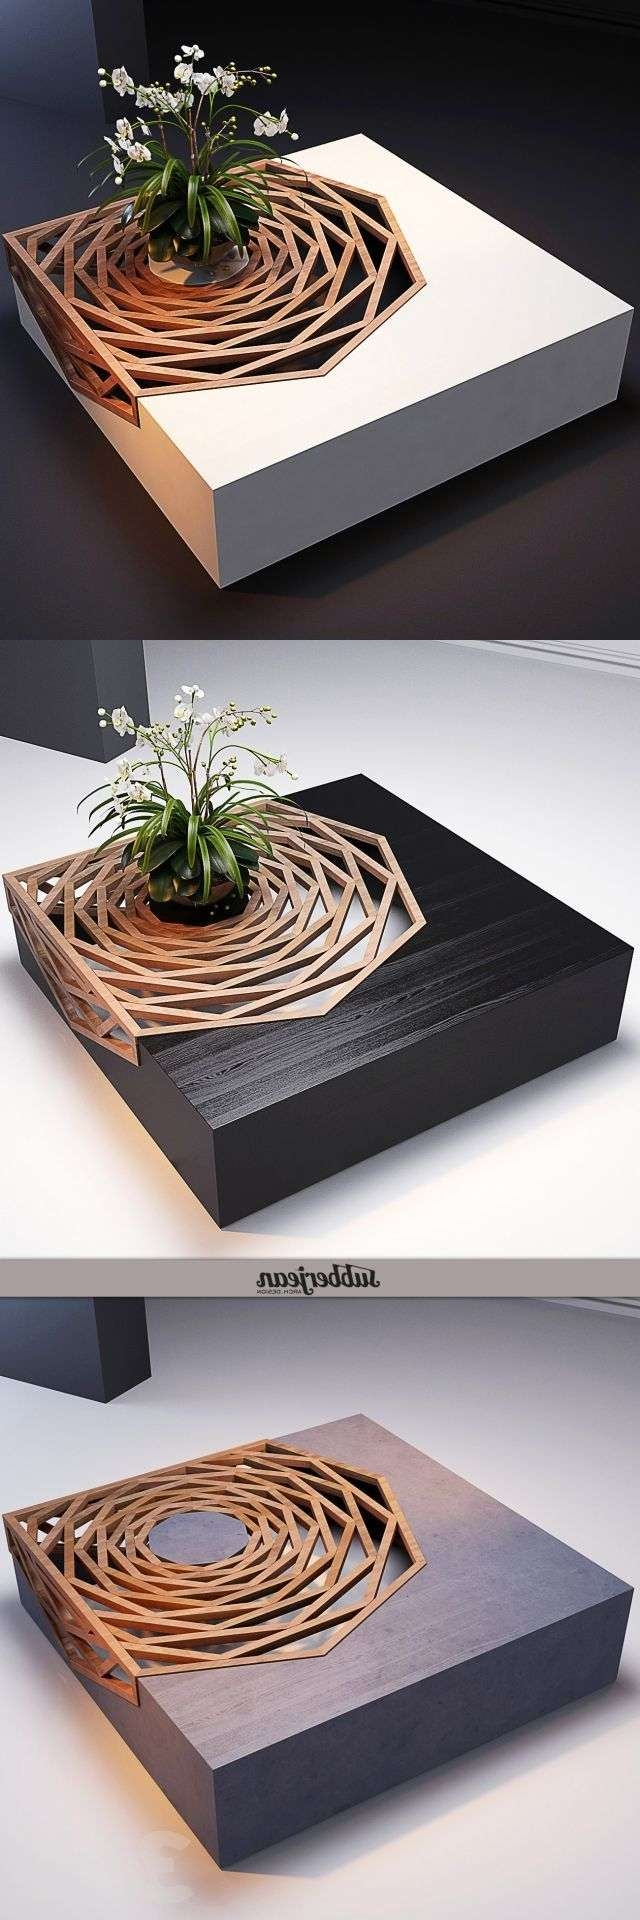 Coffee Table Intended For Favorite Odd Shaped Coffee Tables (View 9 of 20)